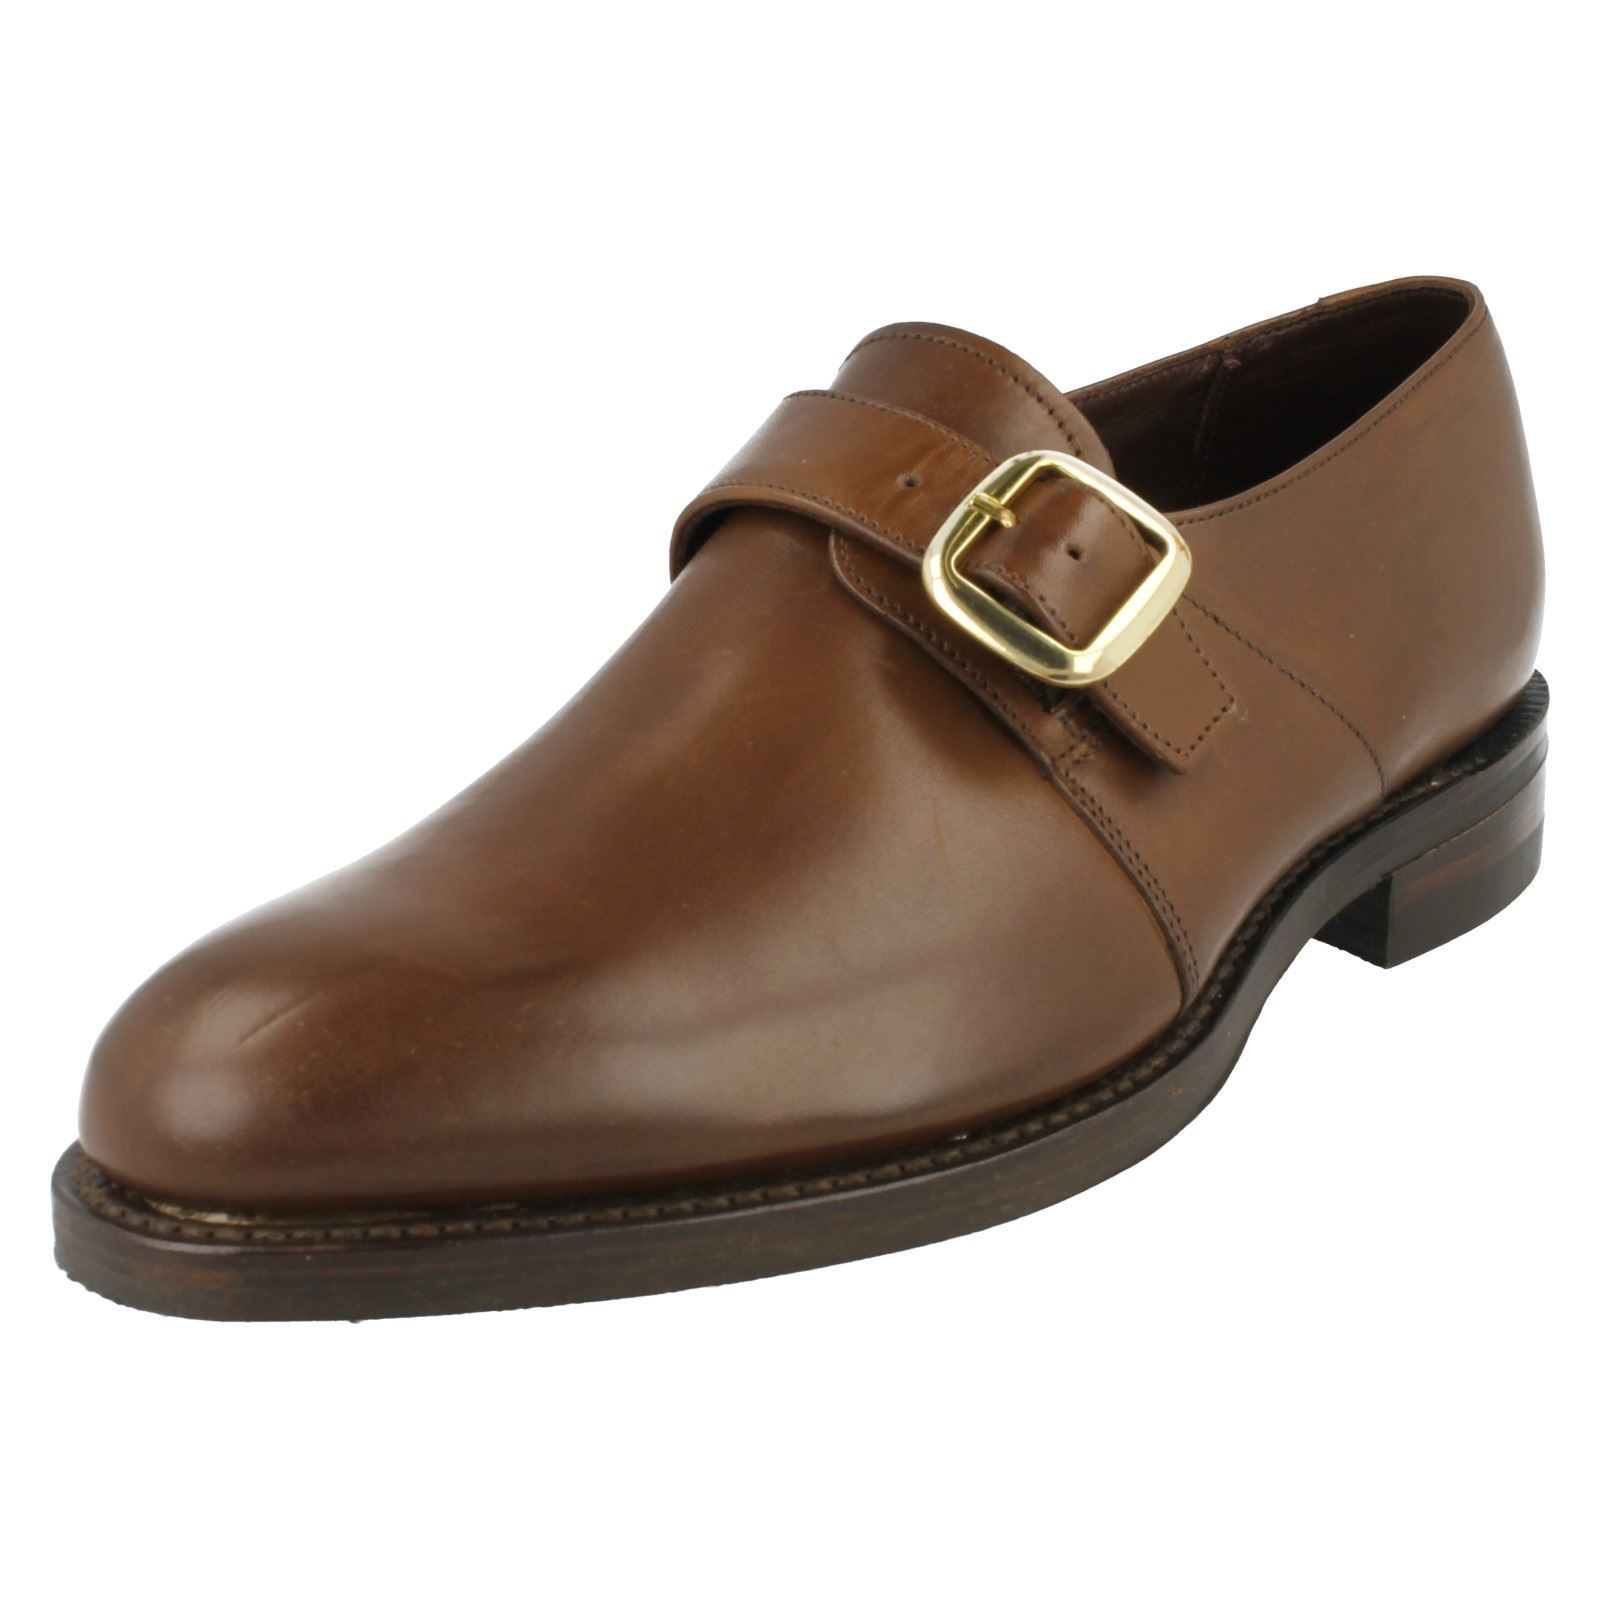 Mens Loake Formal Leather F Fitting Shoes the Style - Fleet